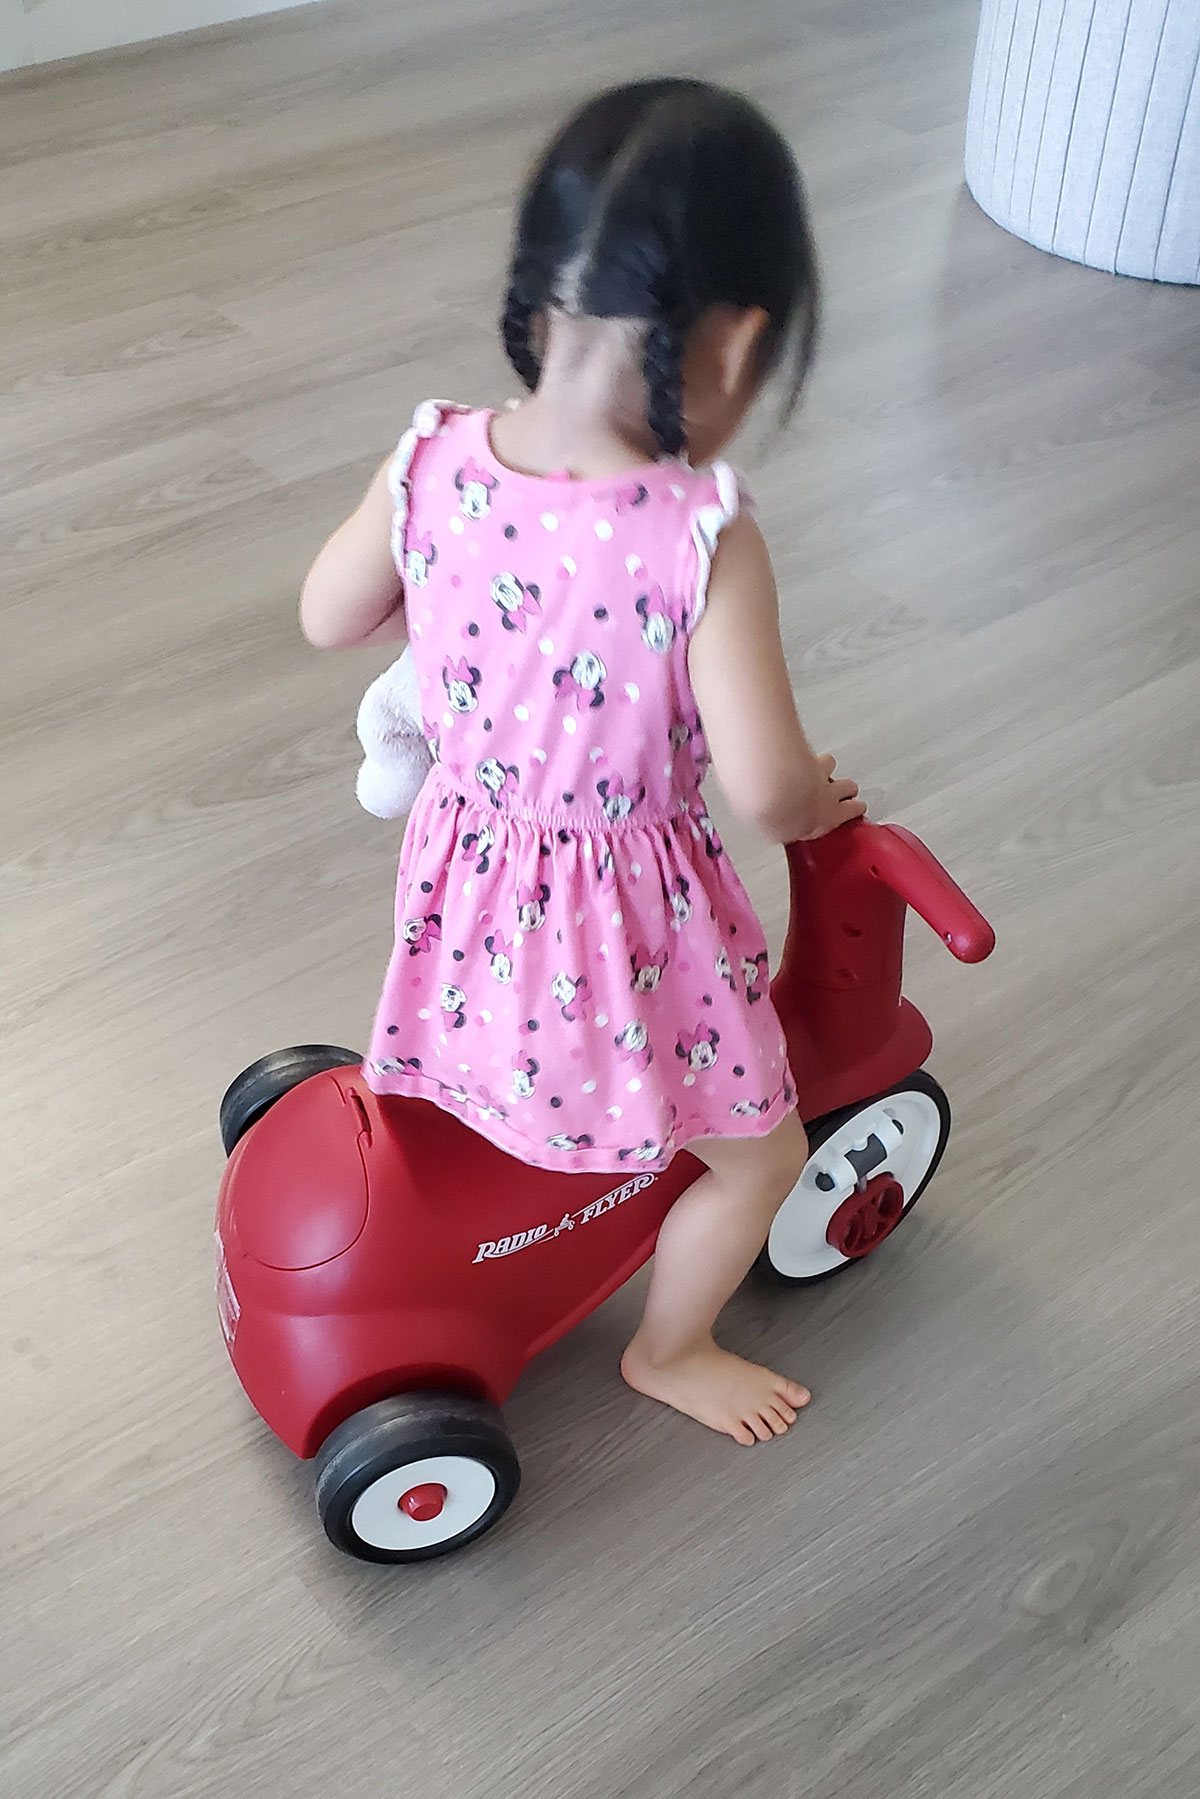 Baby toddler playing independently on a red bike.